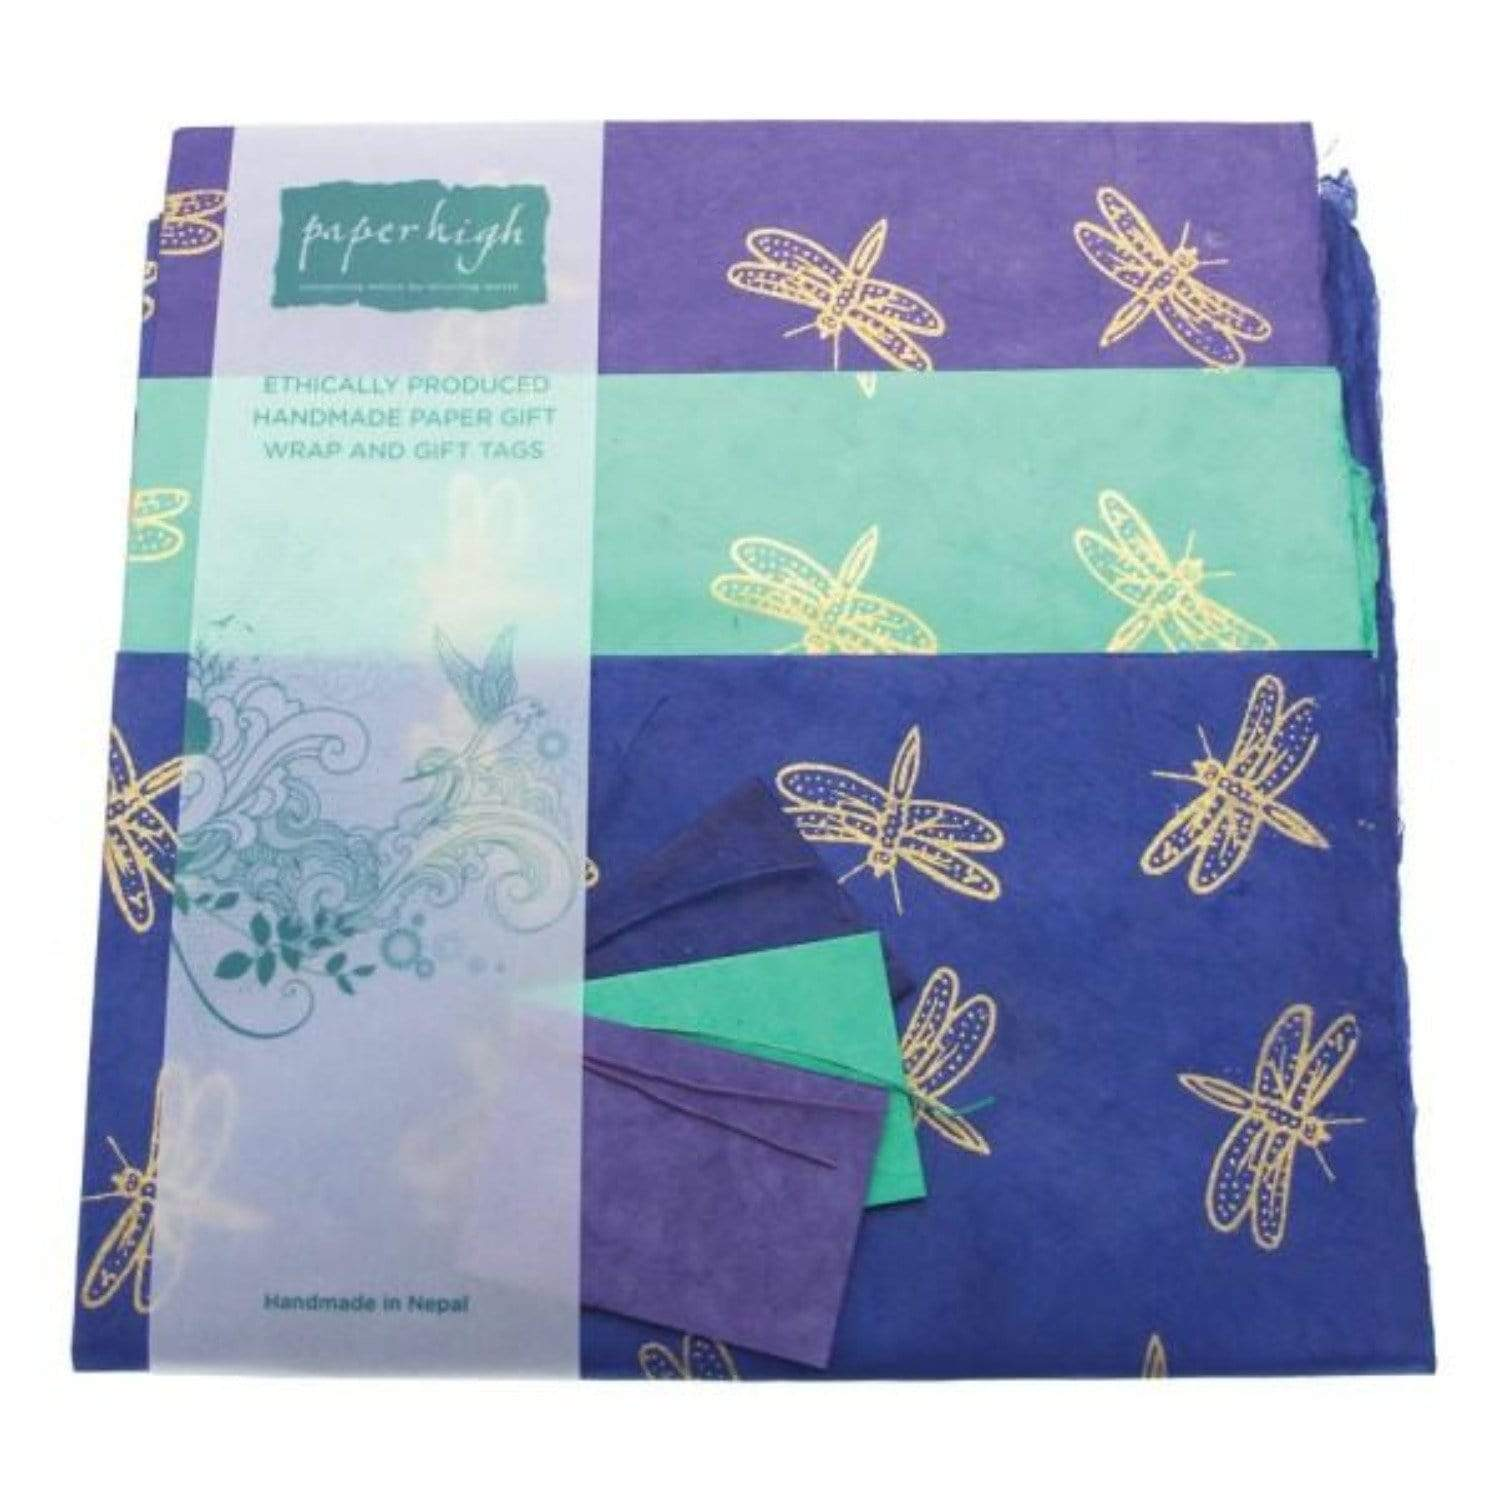 sustainable gifts Paper High Dragonfly Lokta paper gift wrap with tags